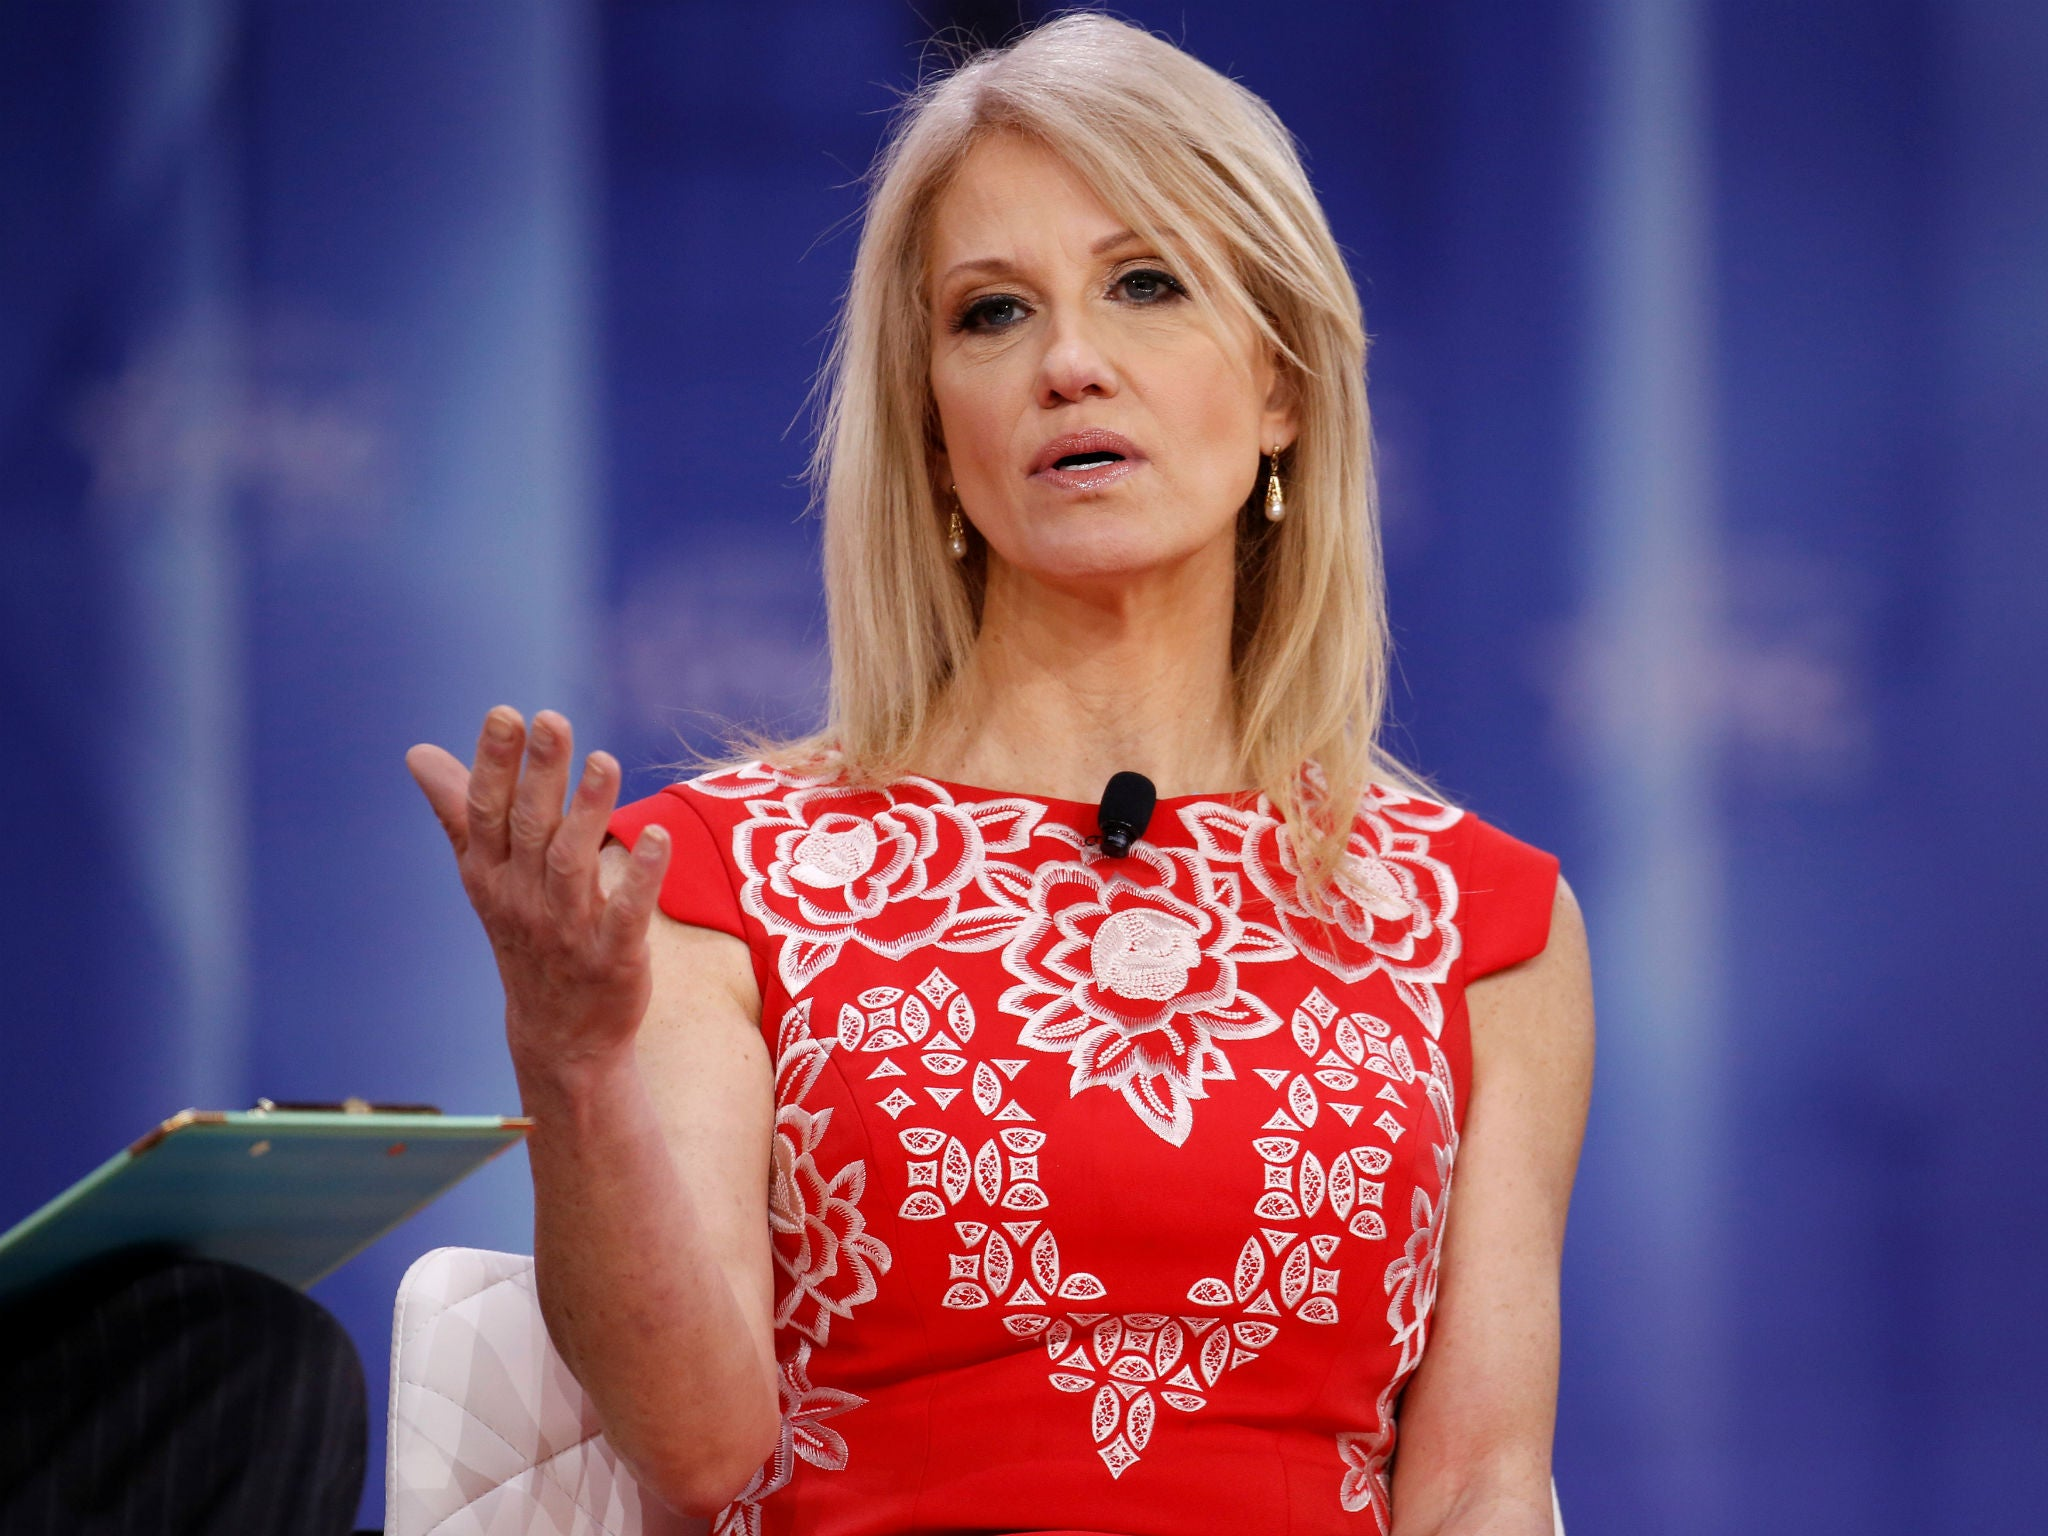 White House counsellor Kellyanne Conway violated law with TV